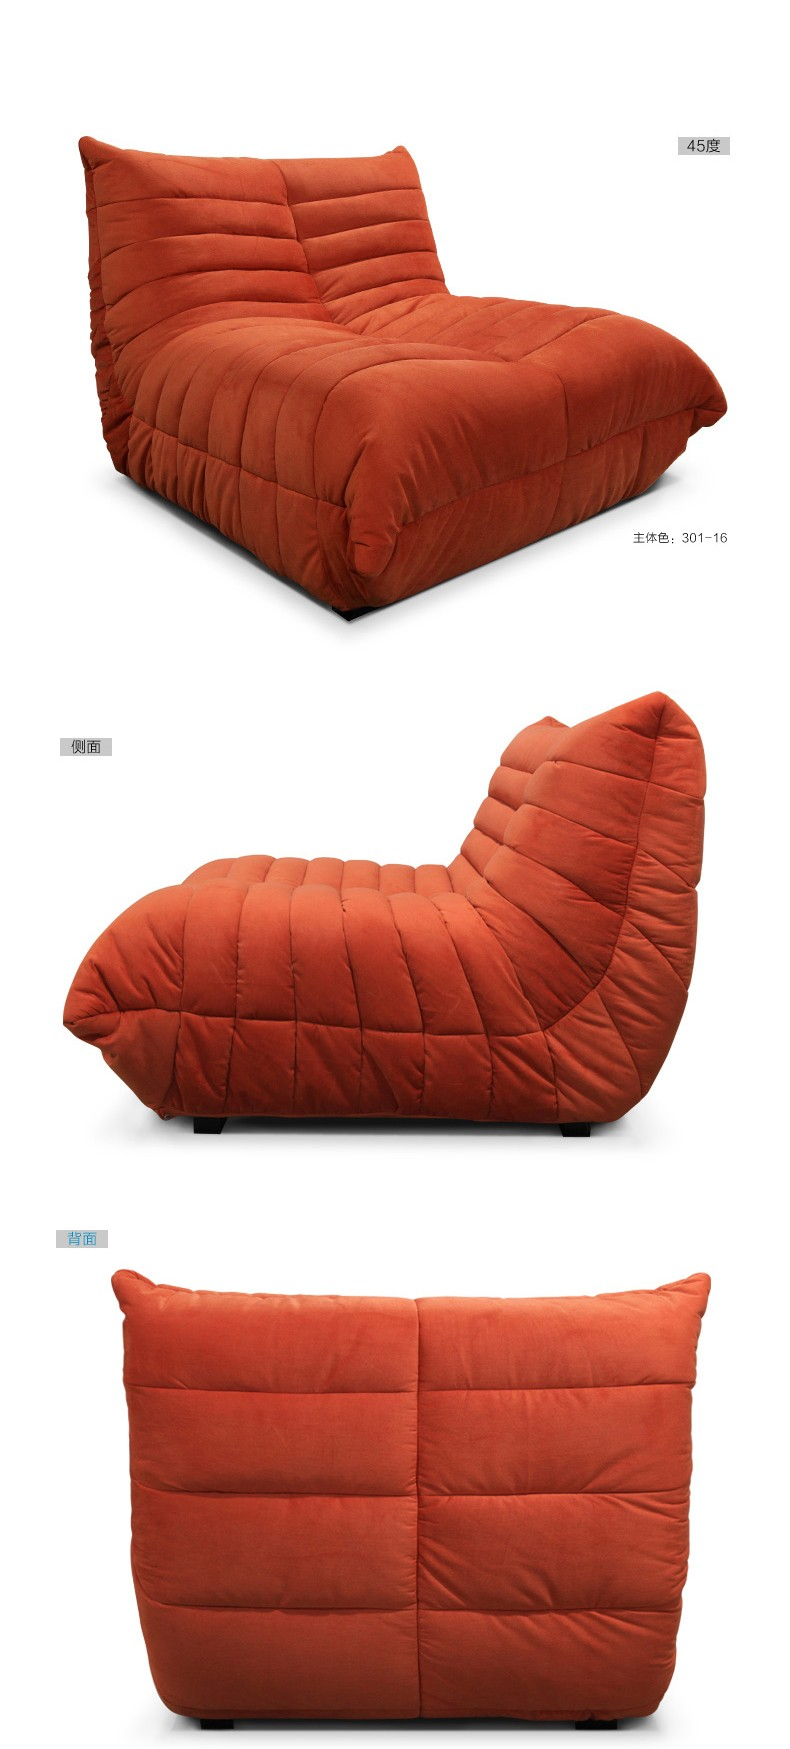 Togo Sofa France Design New Model Cheap Price Togo Sofa Buy Togo Sofa Cheap Price Togo Sofa France Design New Model Cheap Price Togo Sofa Product On